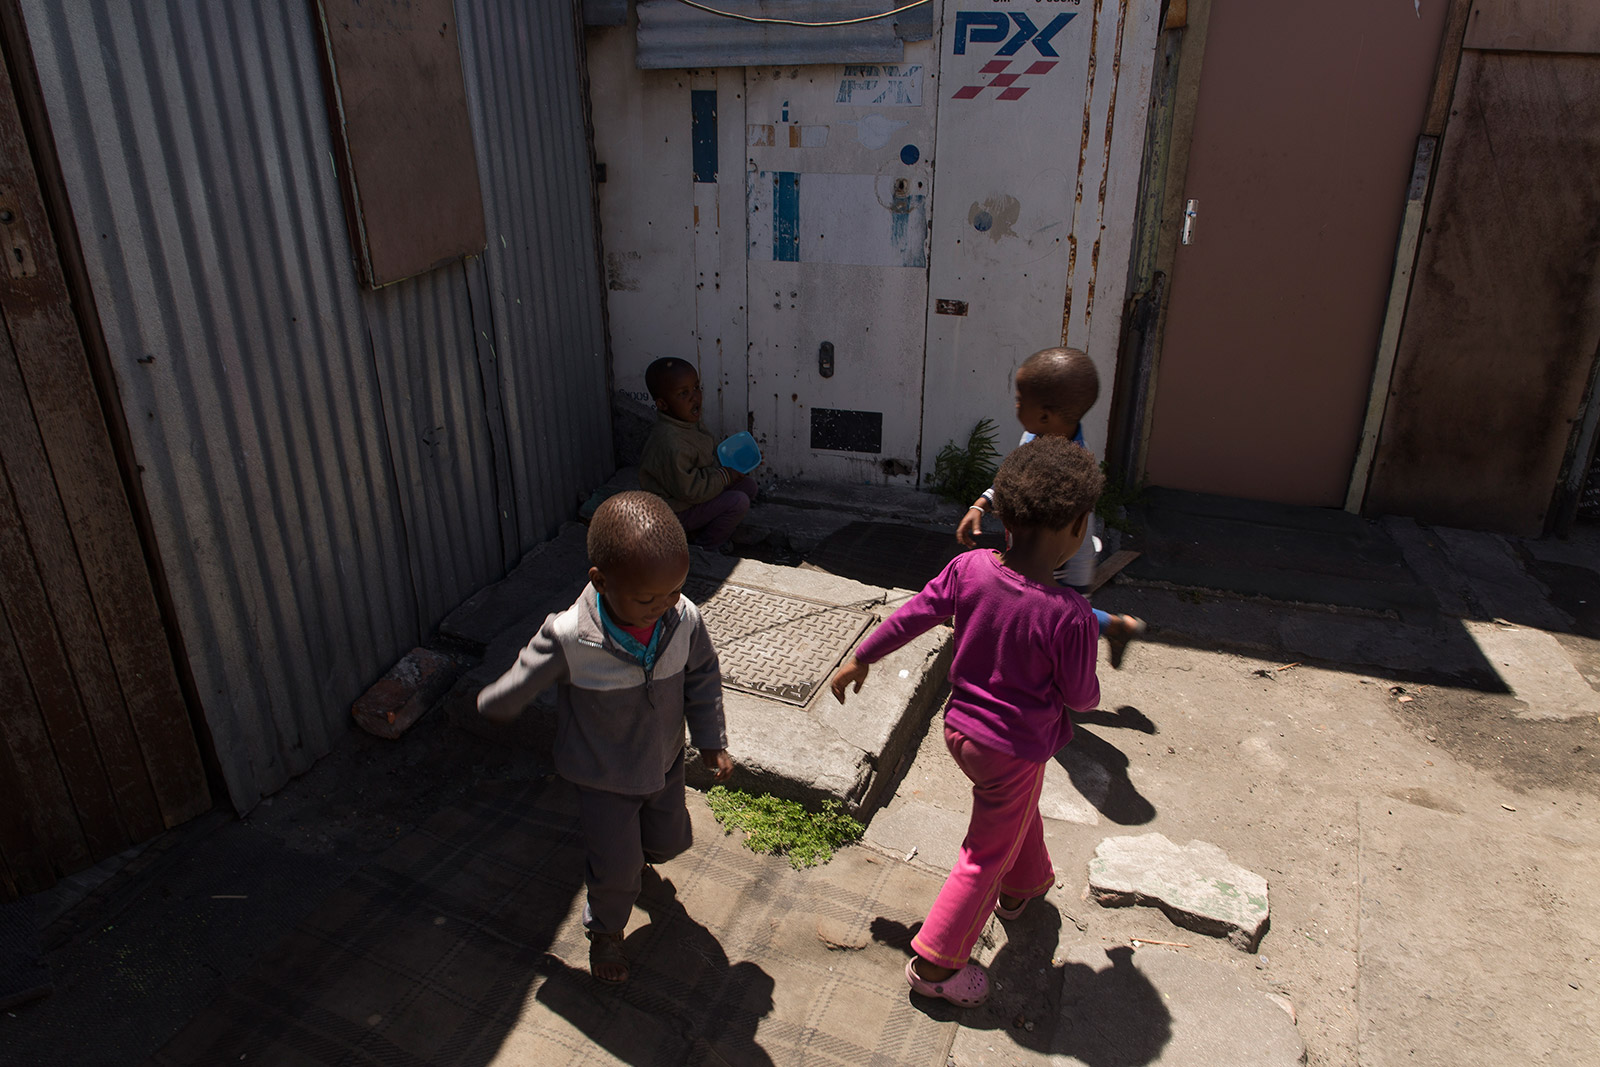 cape-town-and-langa-Michael-Bainbridge-066.jpg